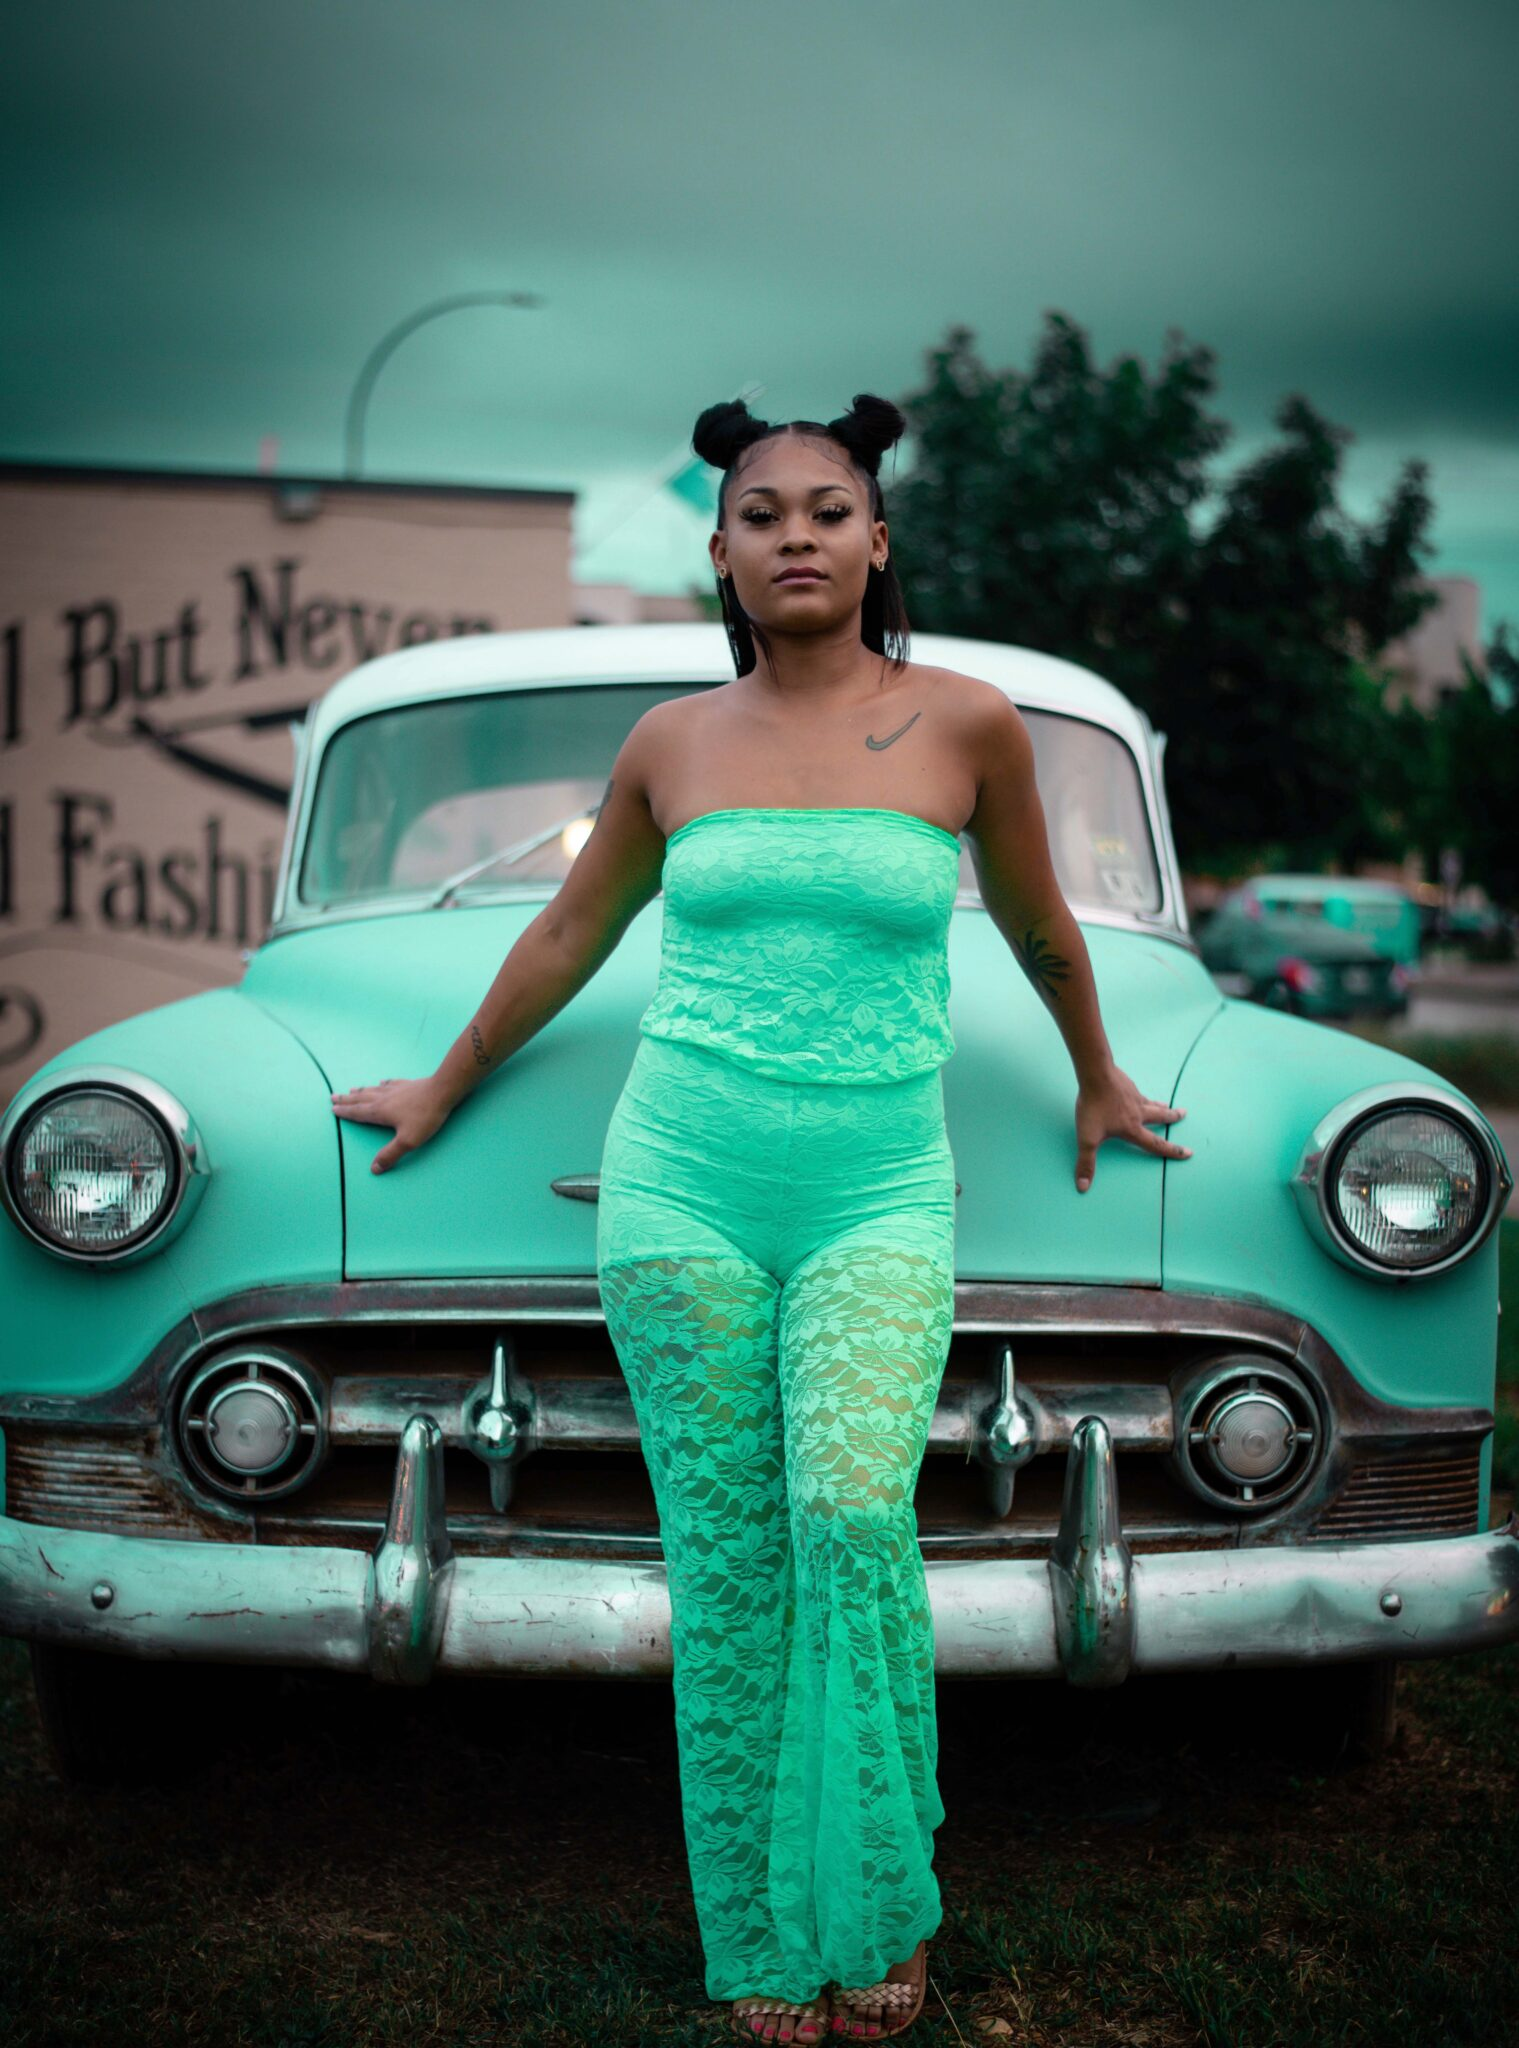 woman leaning on teal car